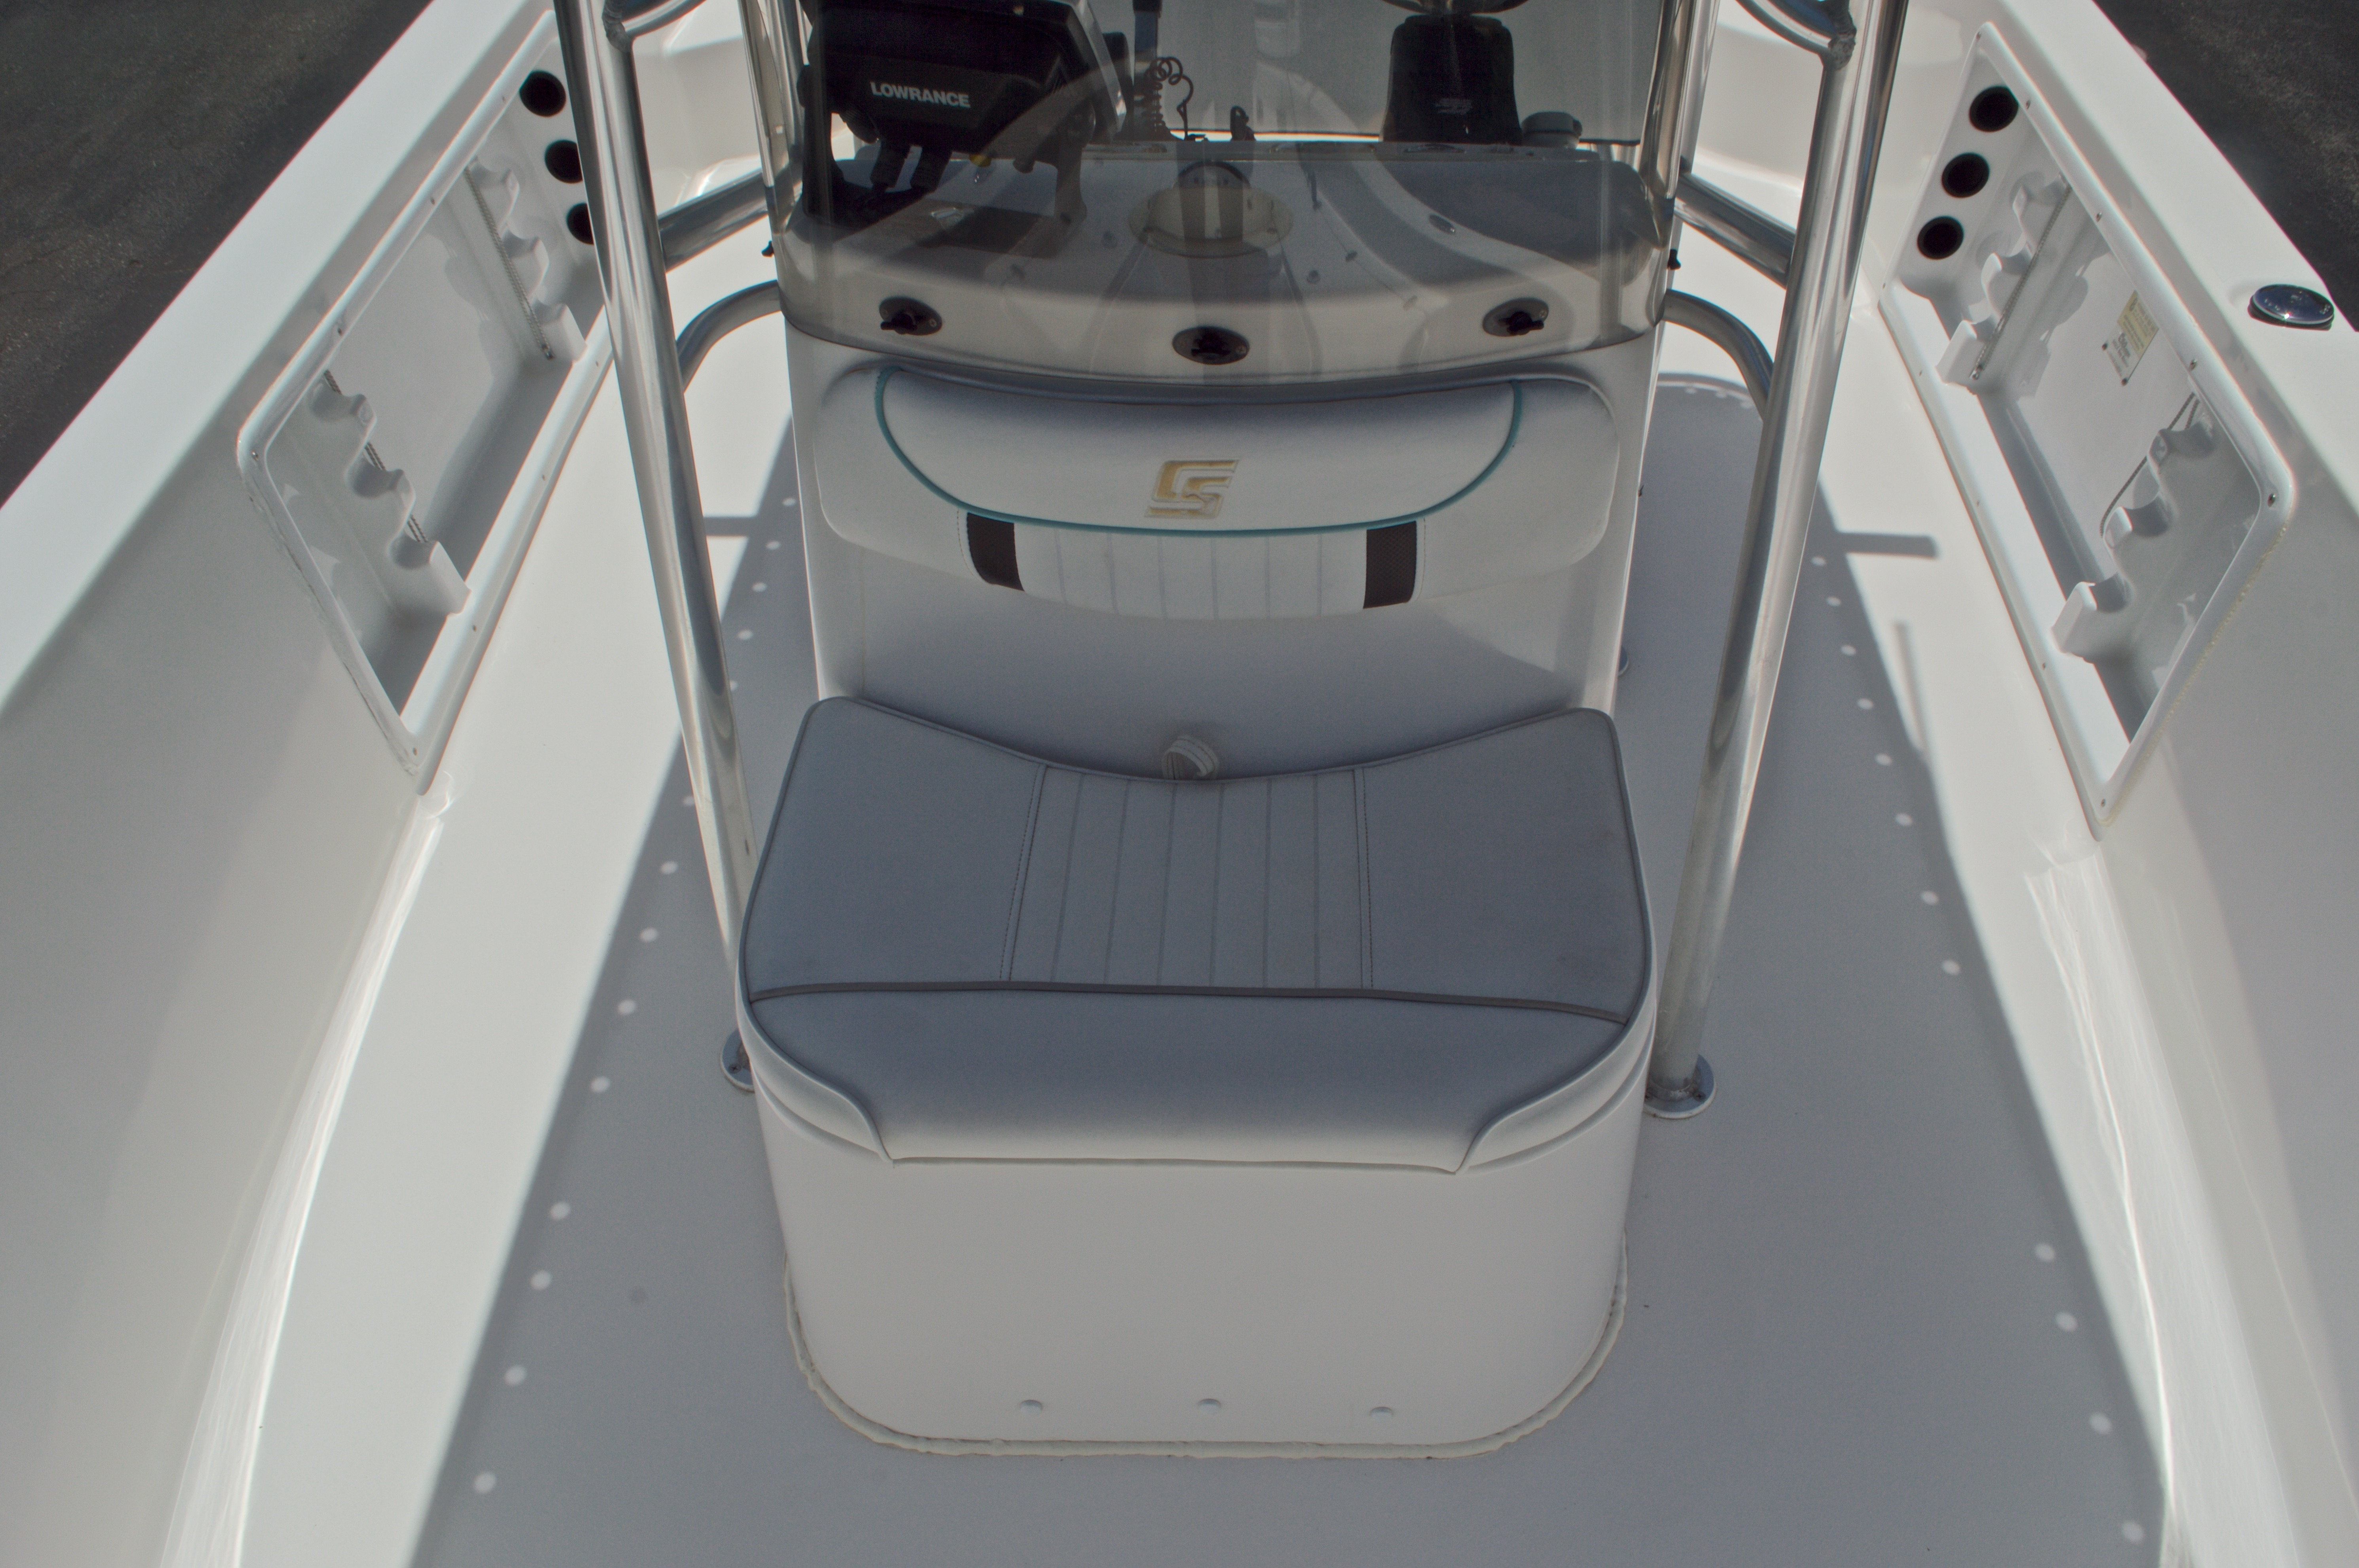 Thumbnail 47 for Used 2005 Sea Chaser 245 Bay Runner LX boat for sale in West Palm Beach, FL